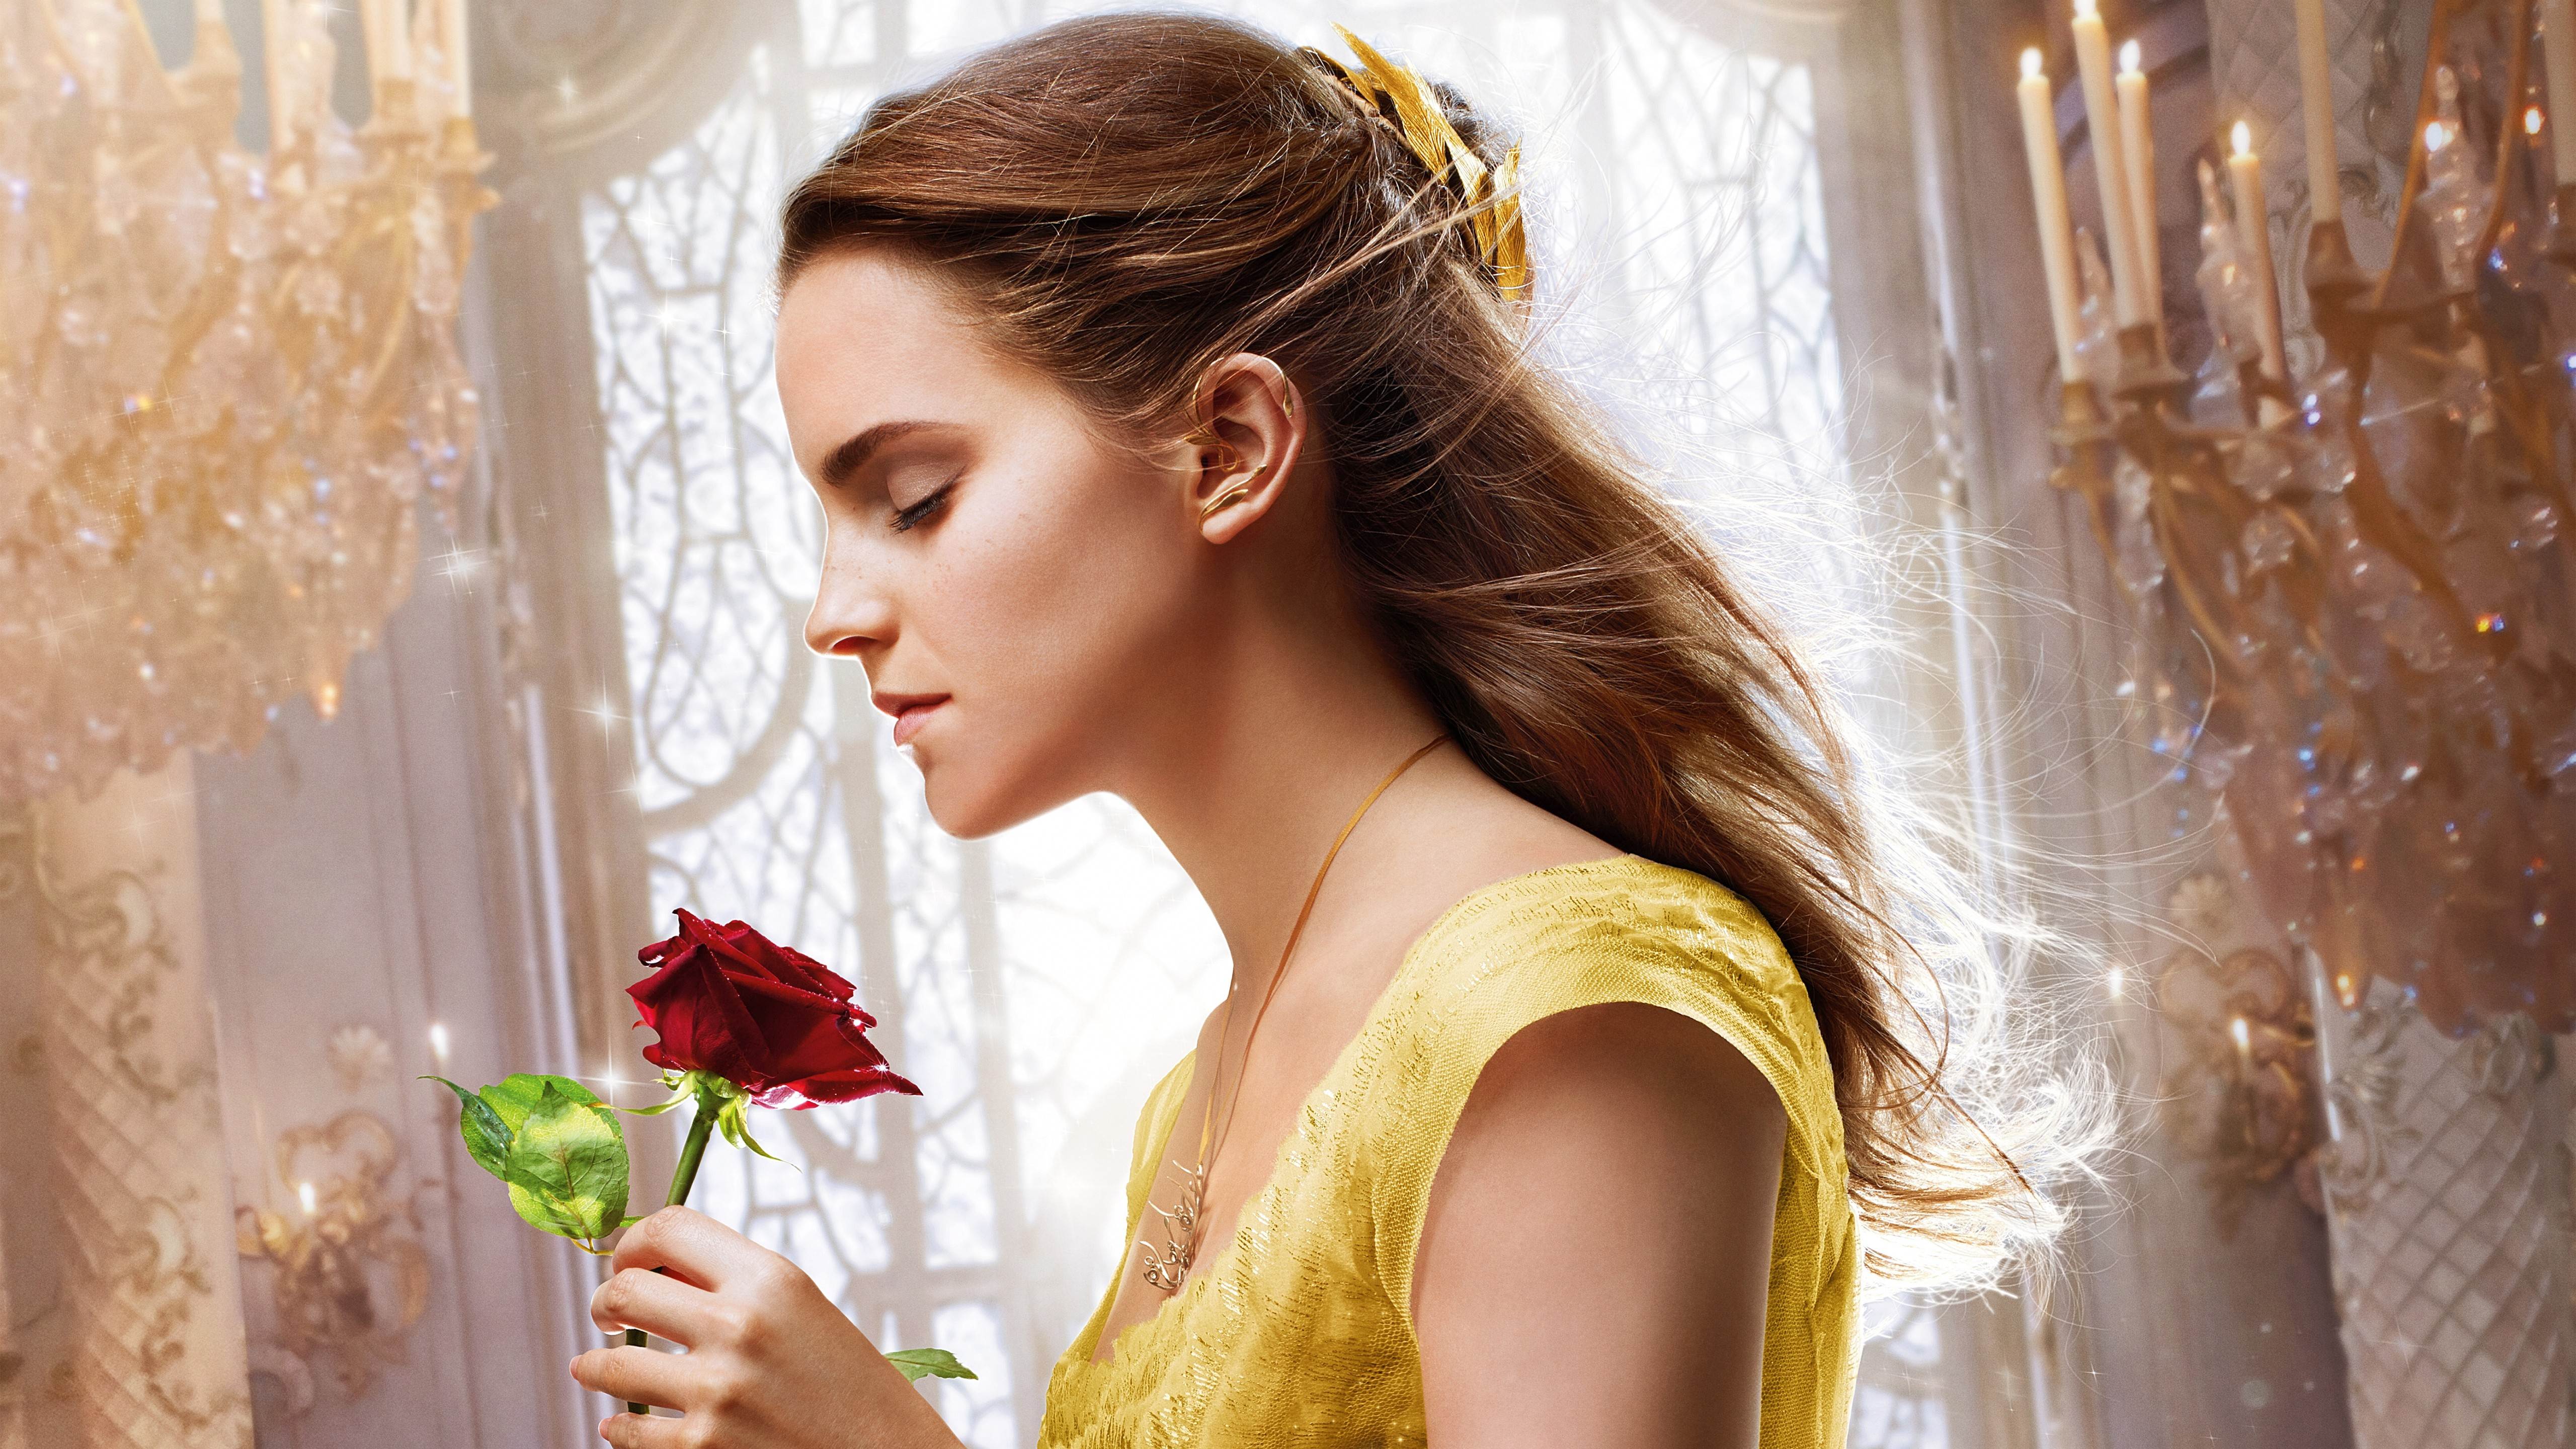 emma watson beauty and the beast 5k hd, hd movies, 4k wallpapers